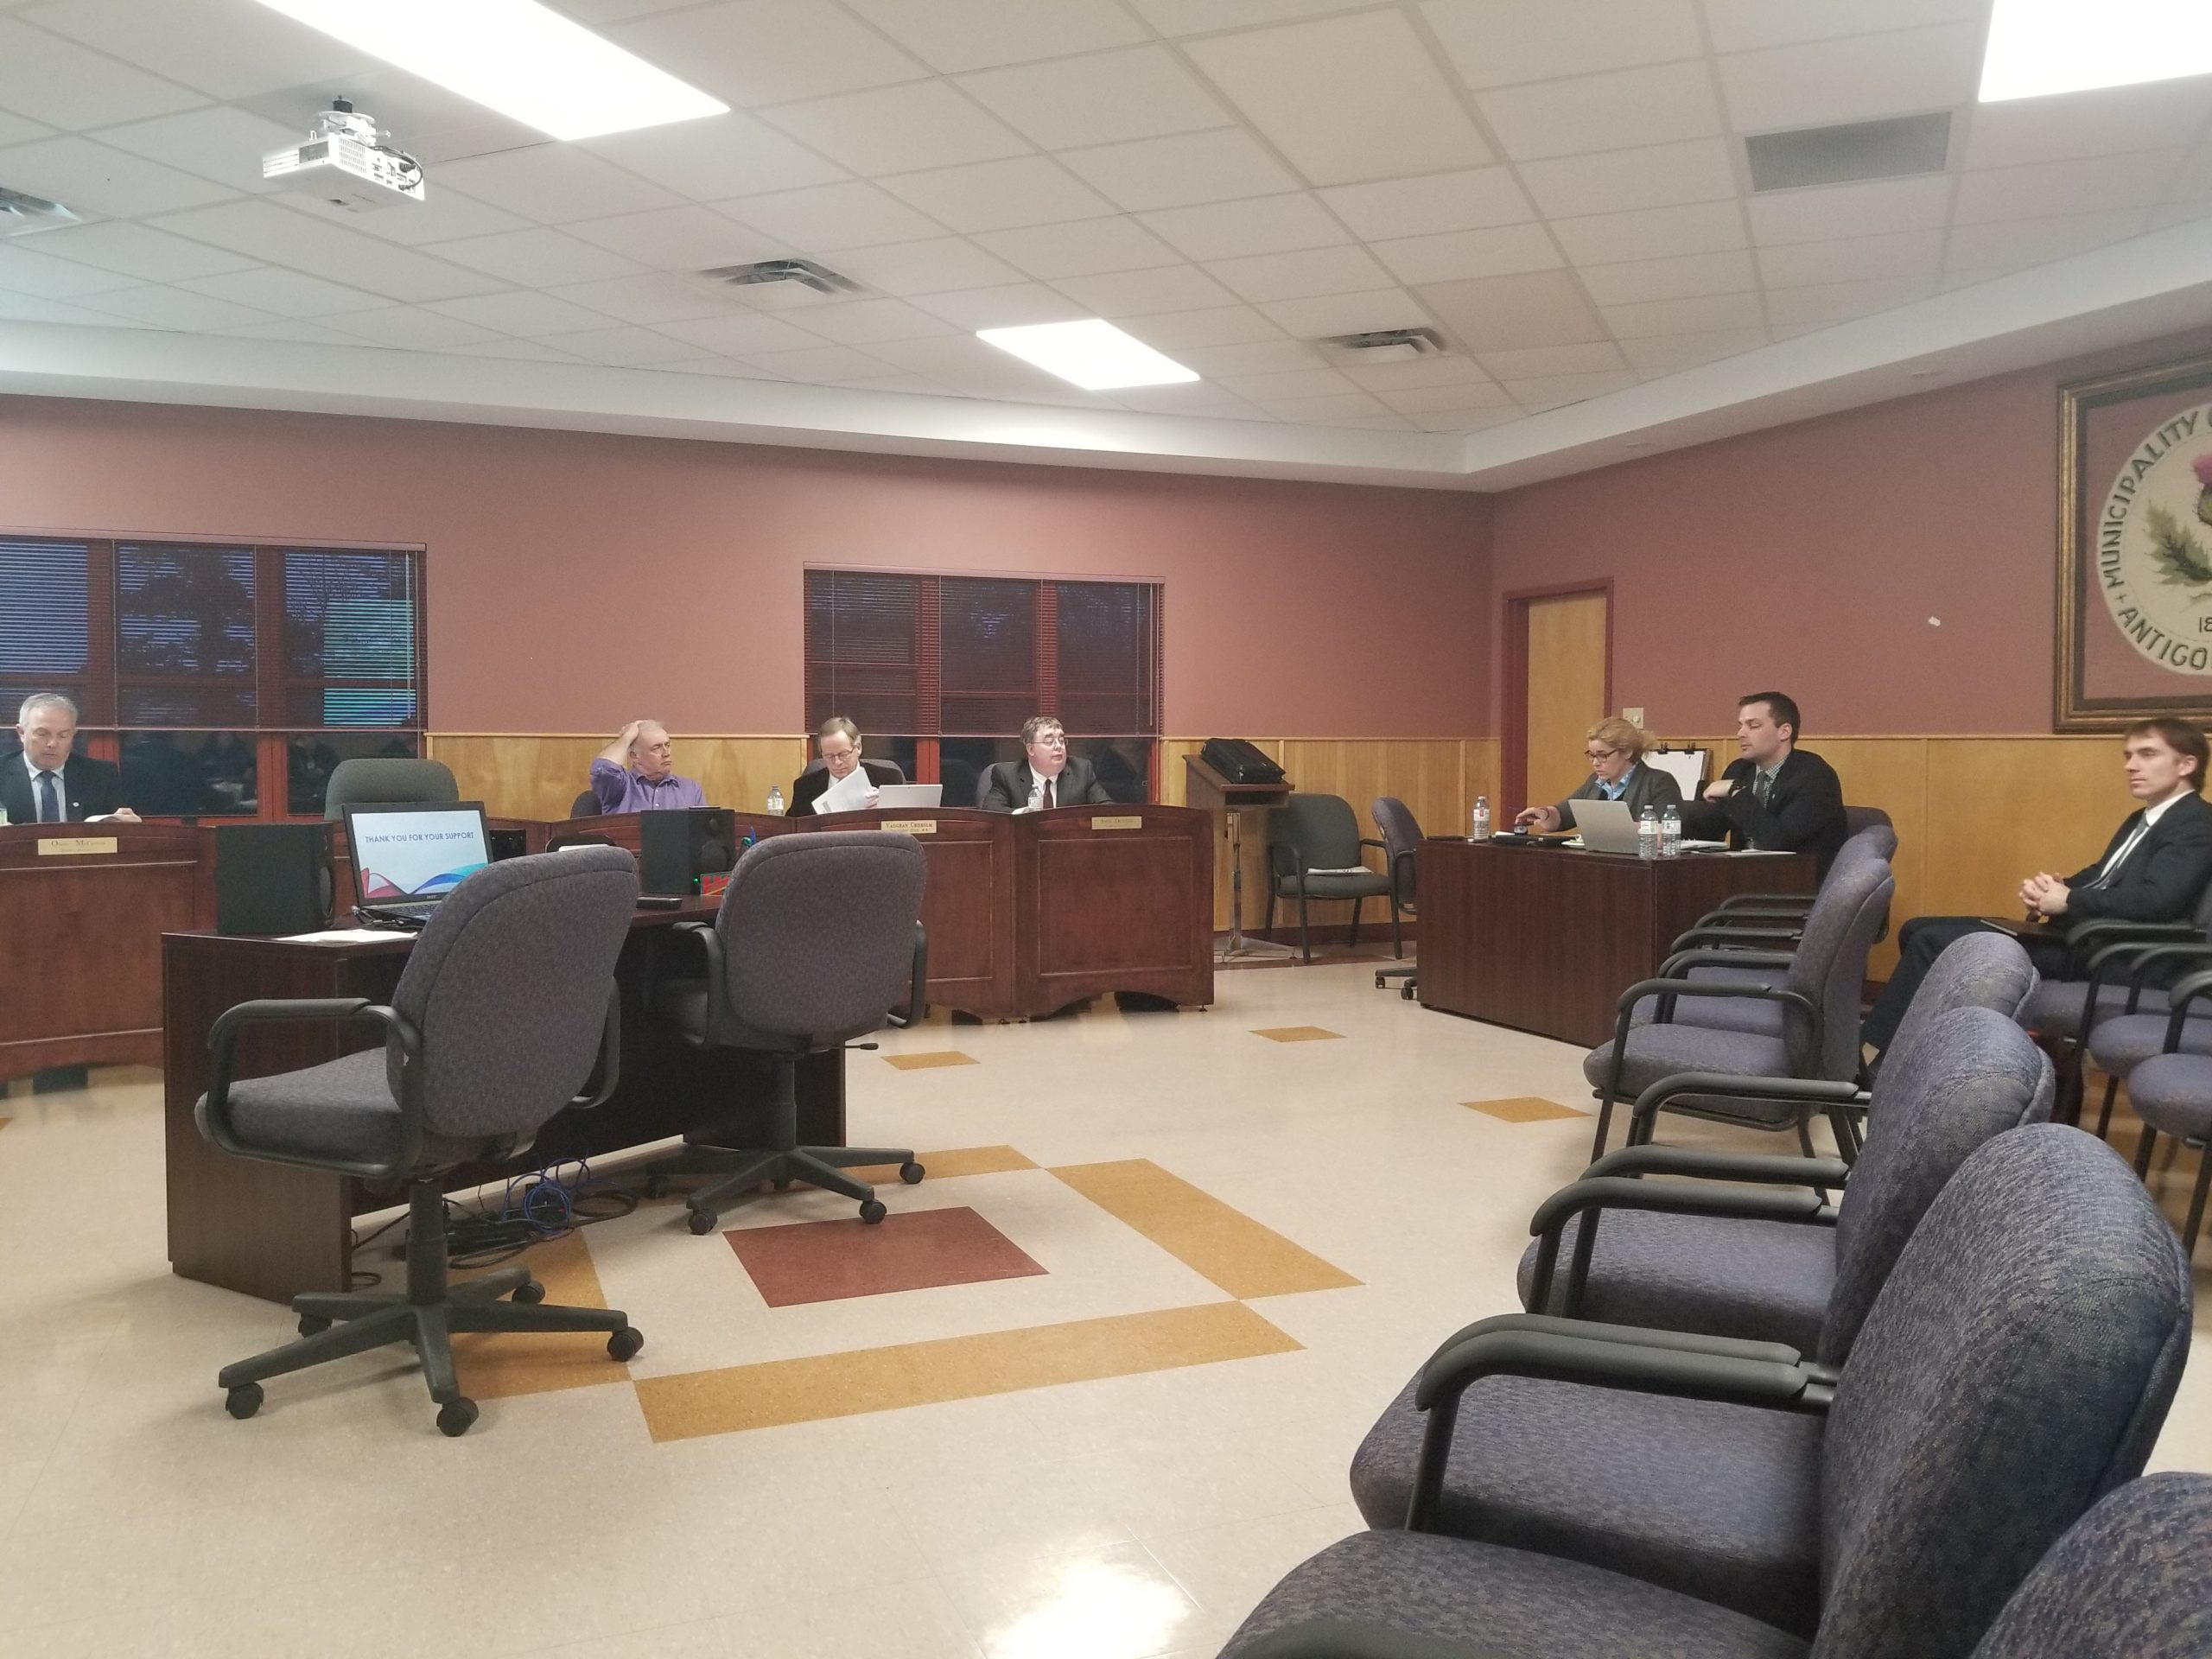 Antigonish Co. warden says goal is to keep tax rates the same